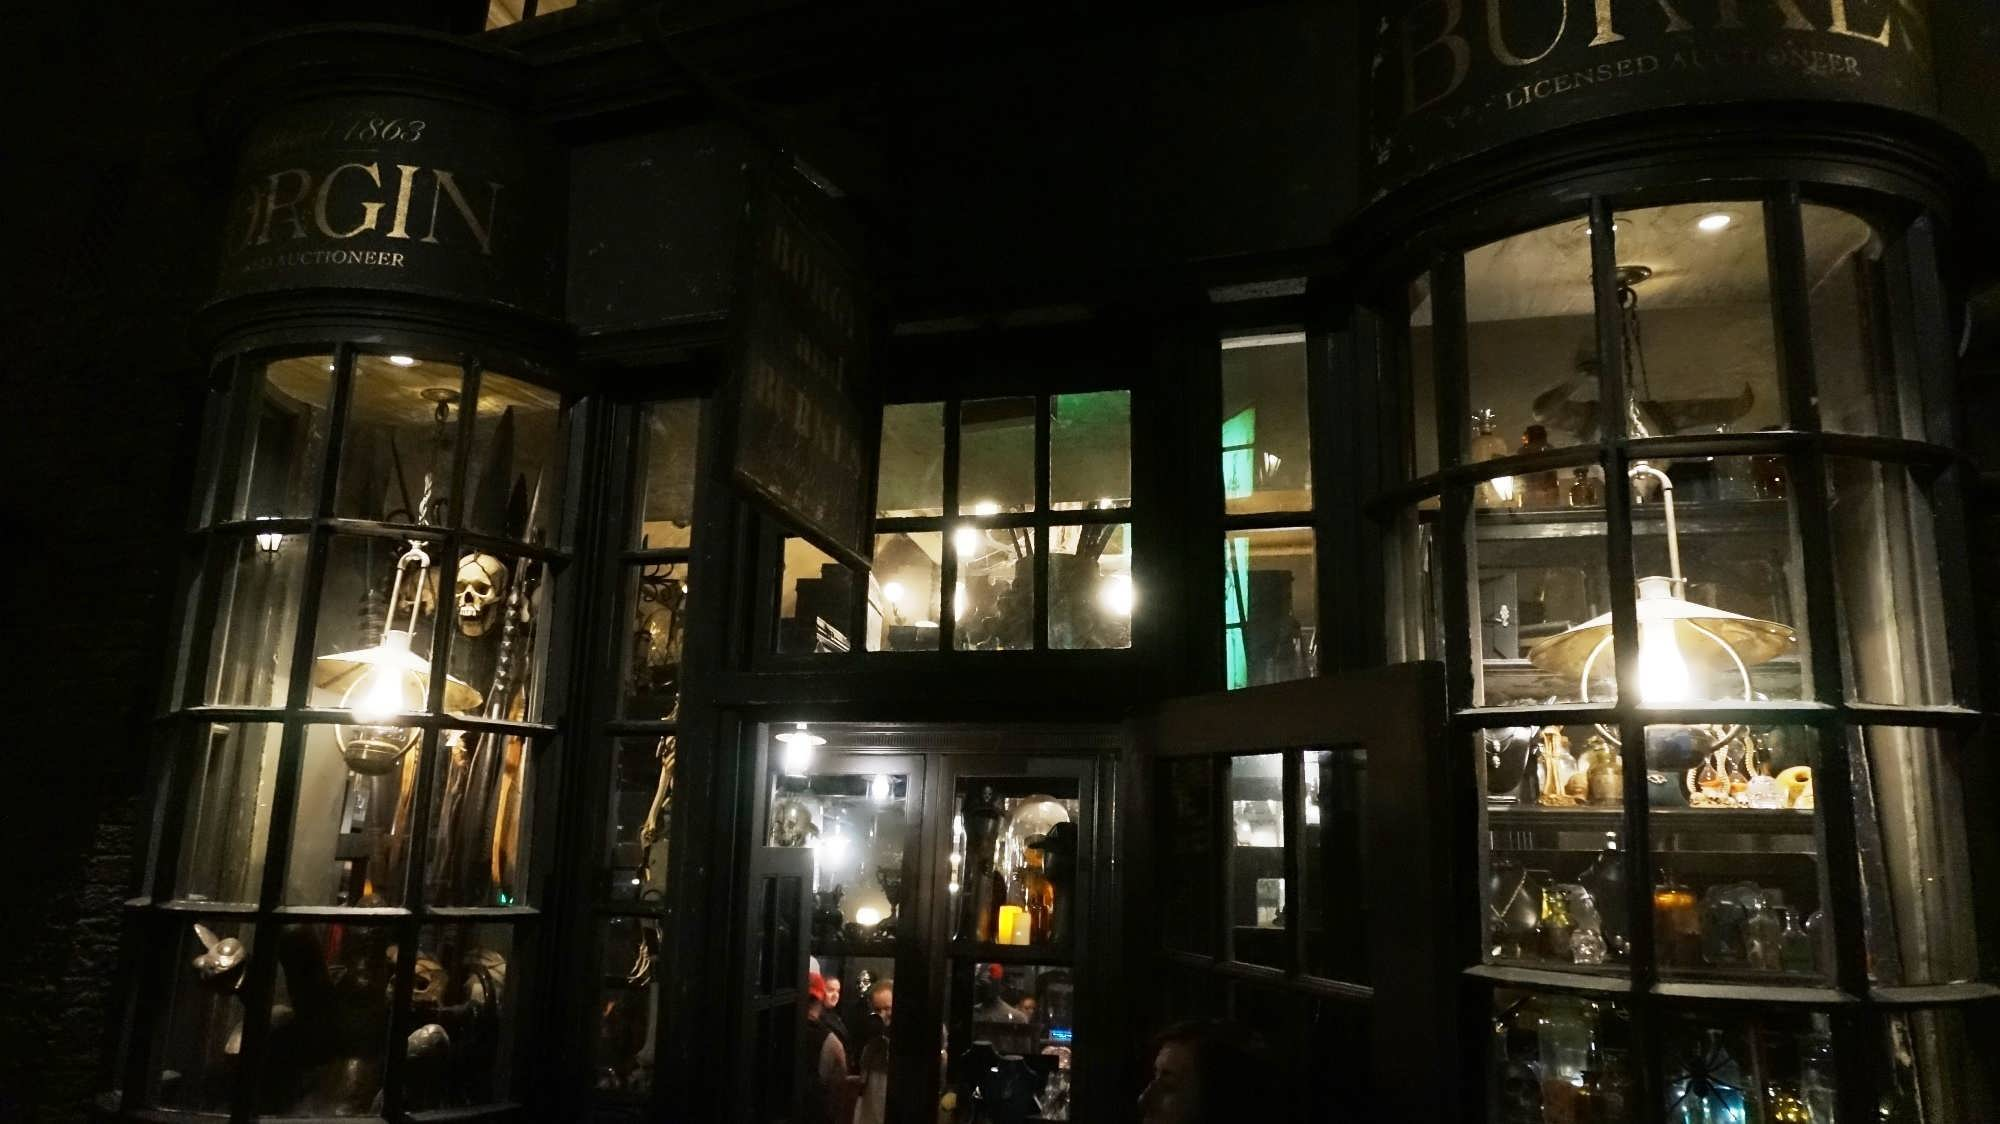 Borgin and Burkes at the Wizarding World of Harry Potter - Diagon Alley